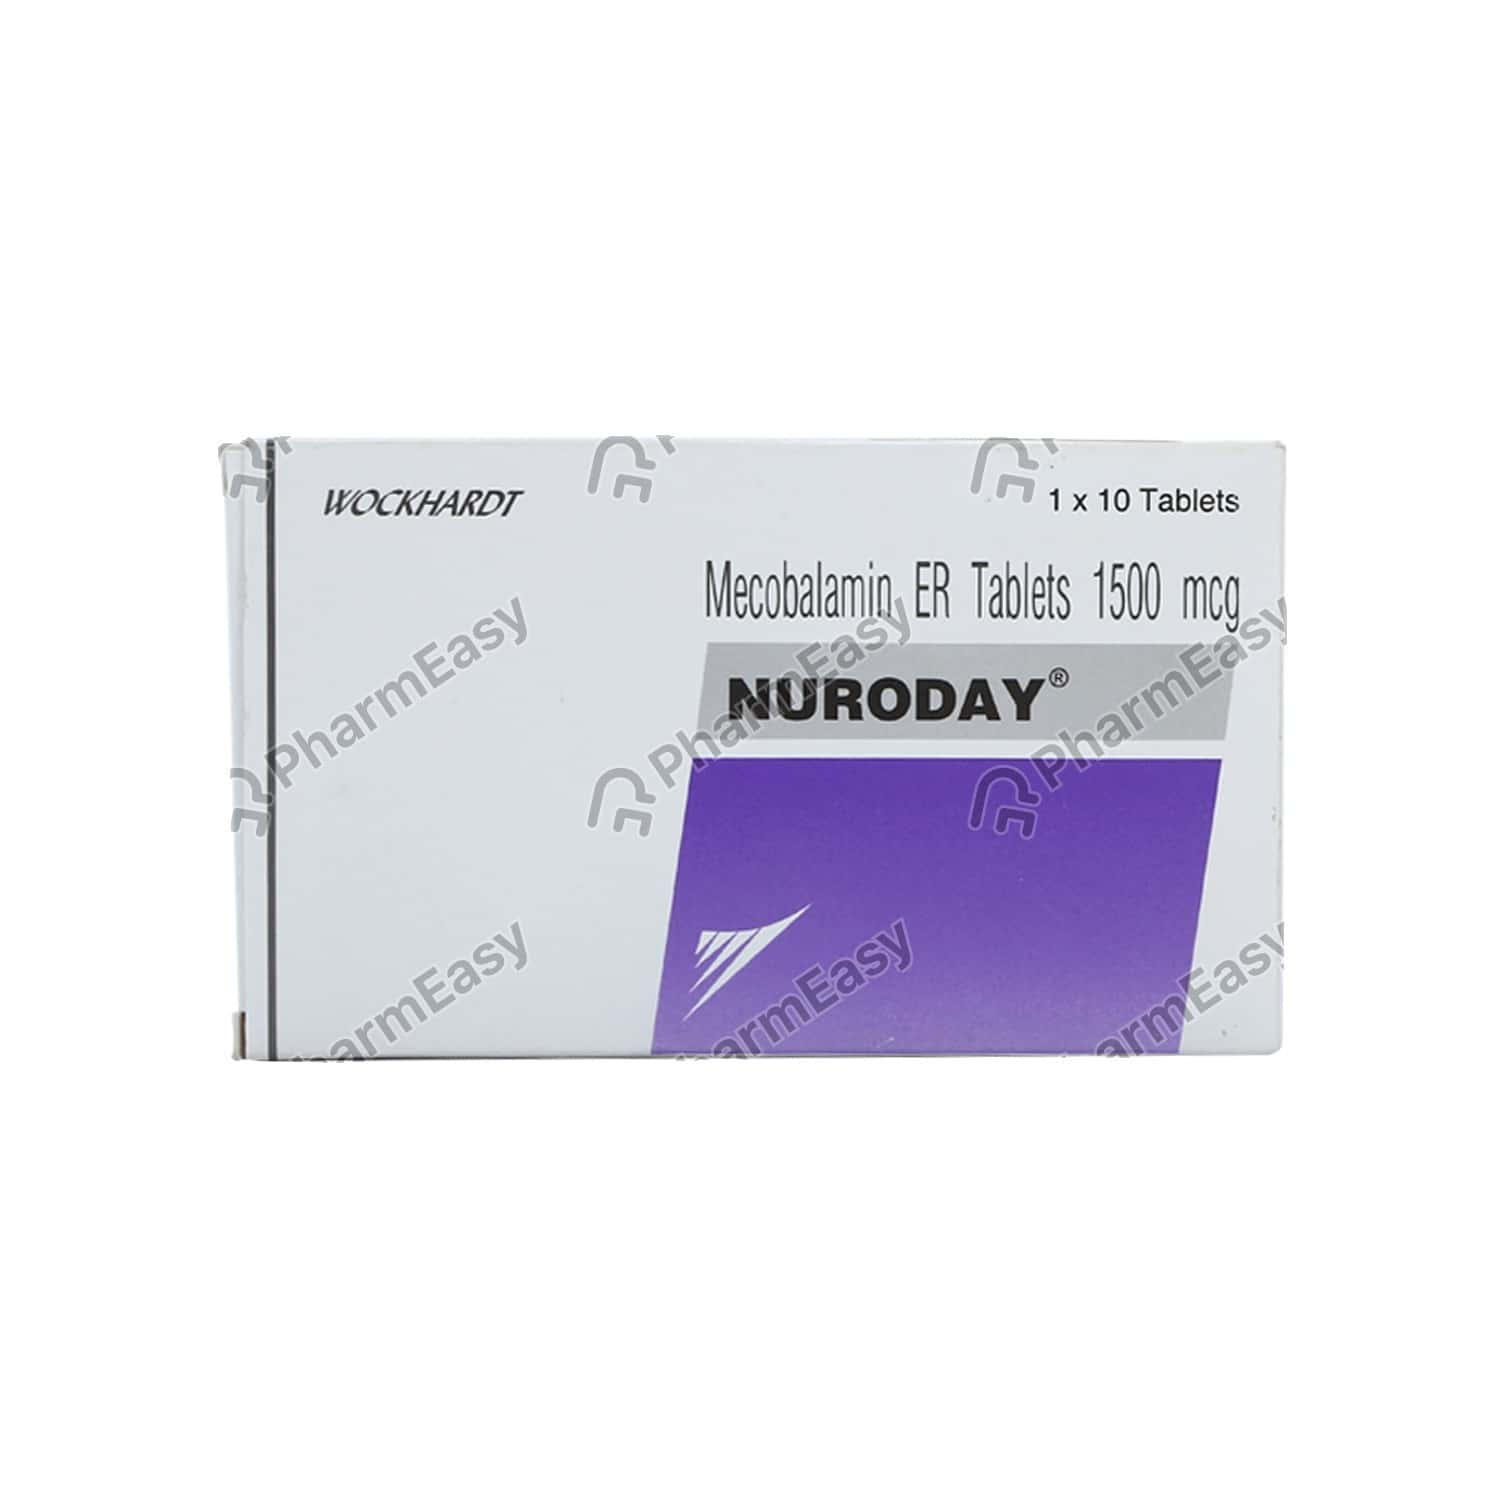 Nuroday 1500mcg Strip Of 10 Tablets